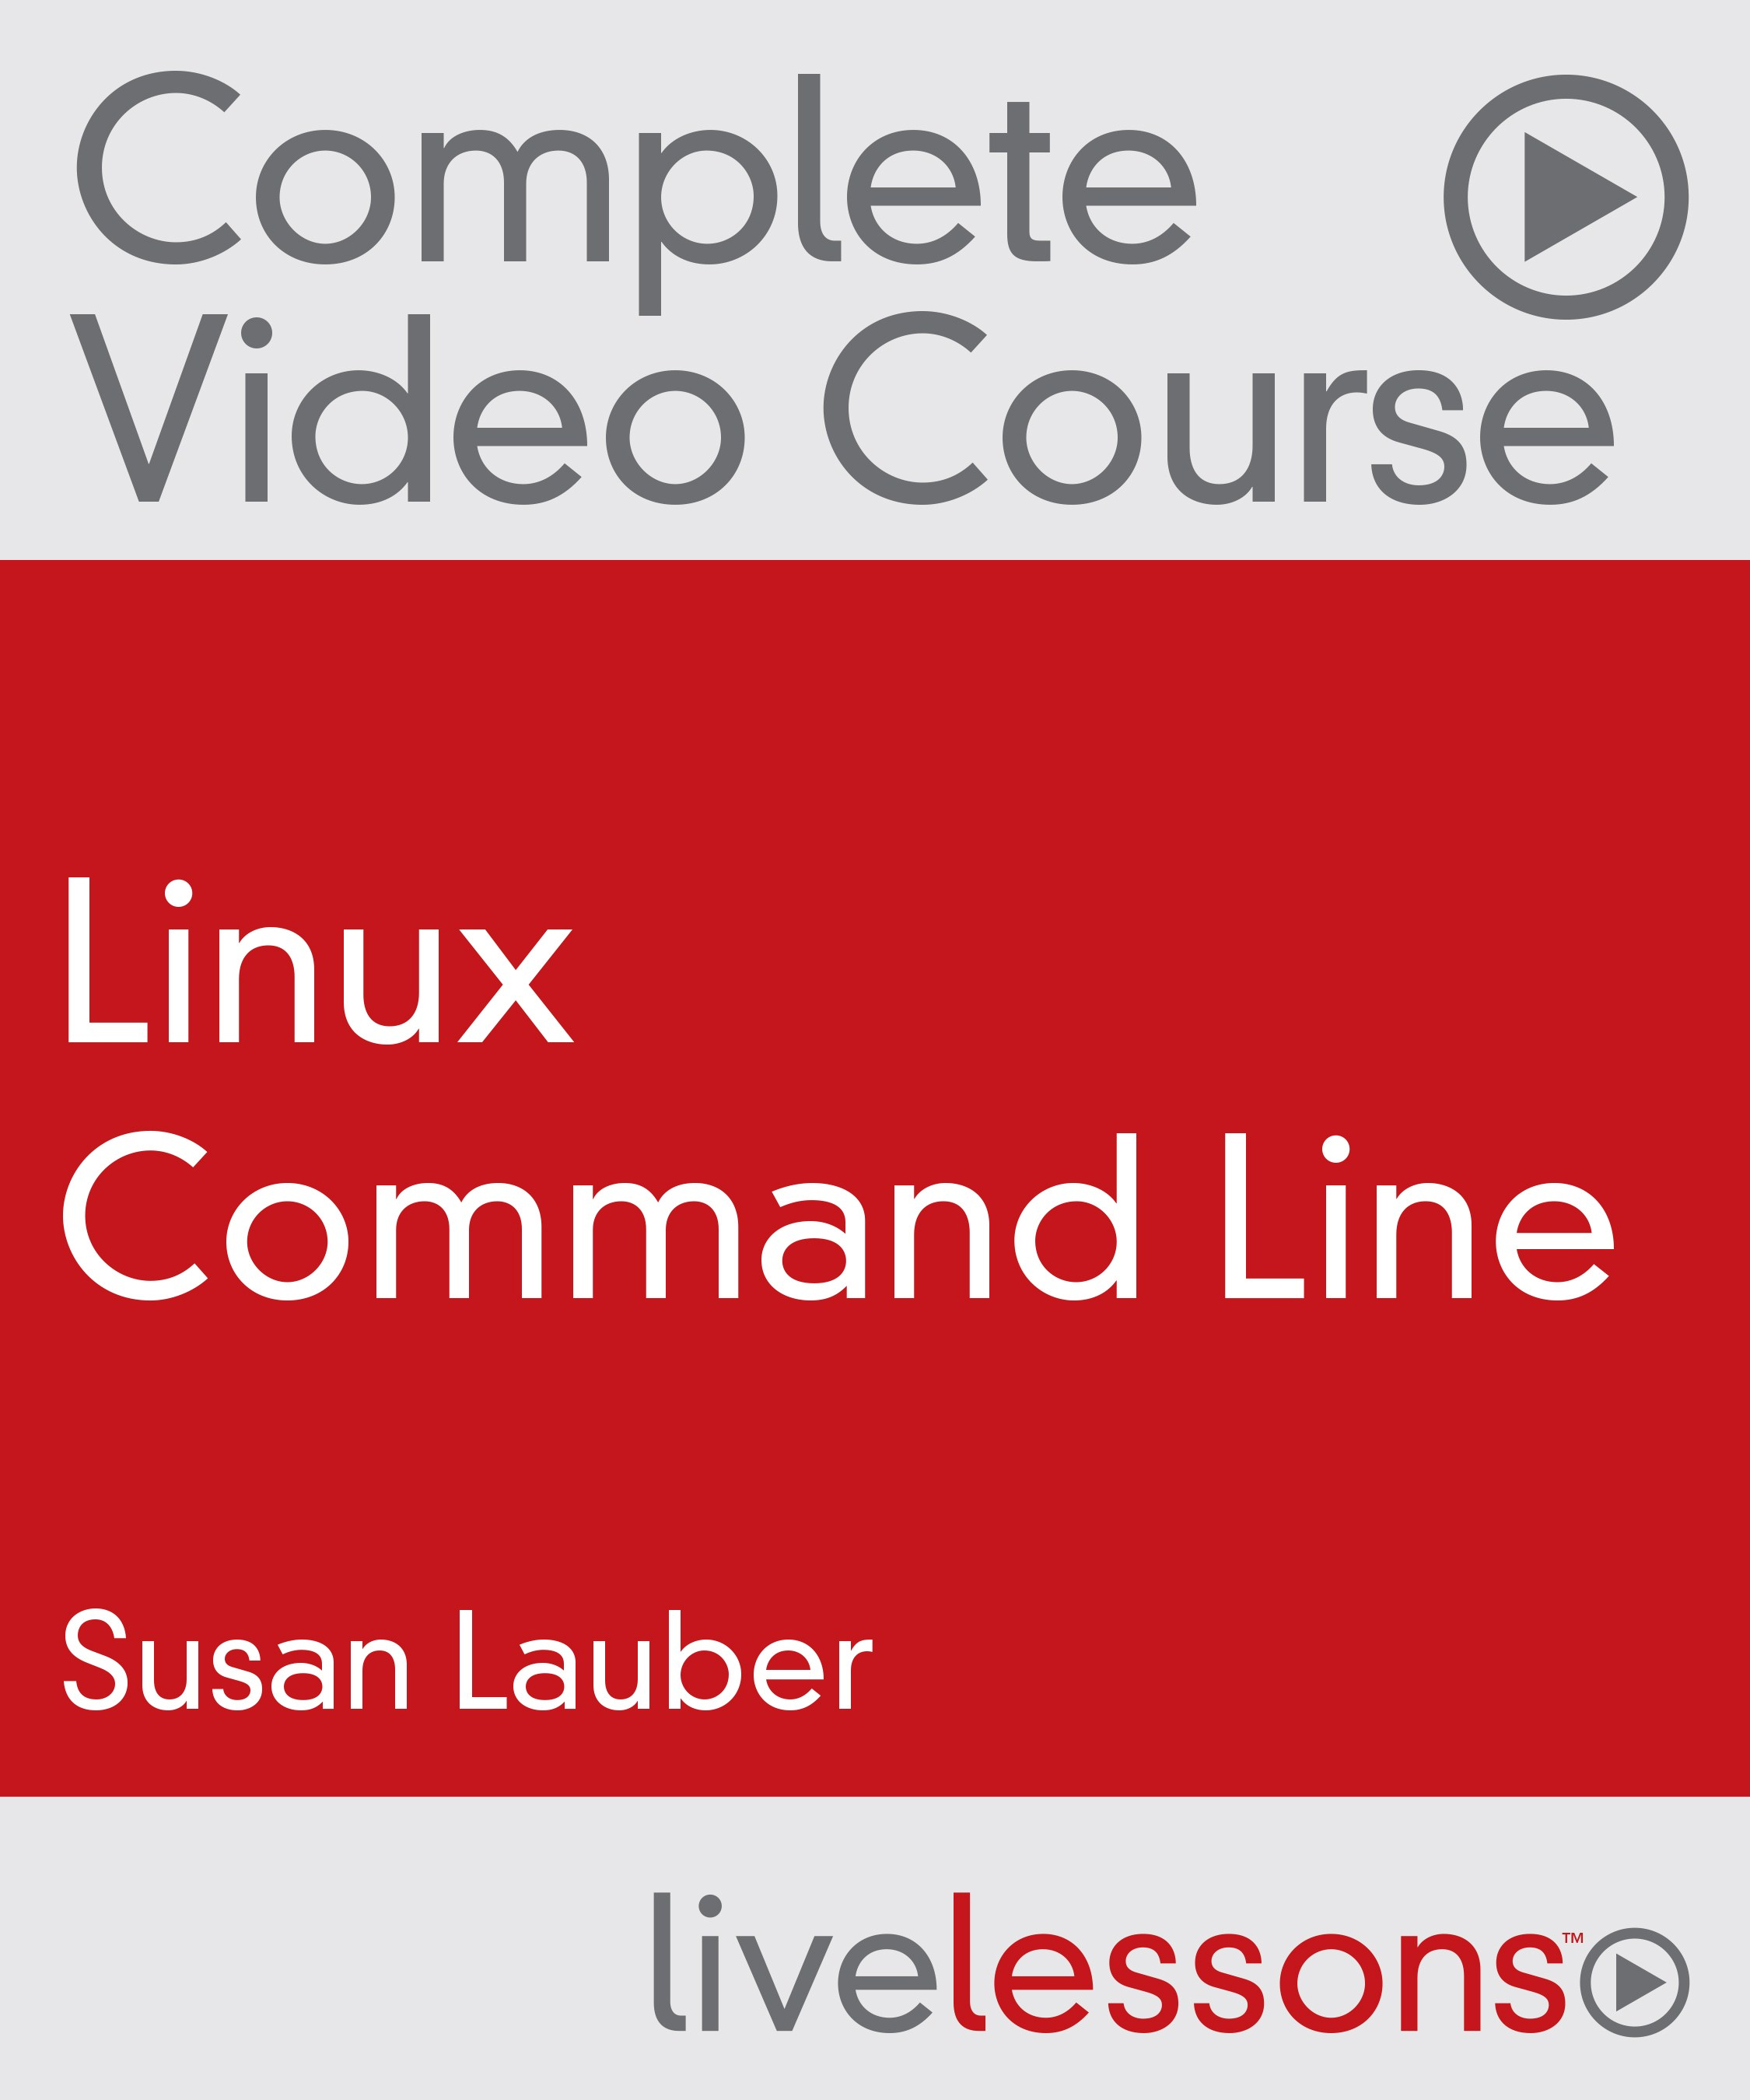 Linux Command Line Complete Video Course